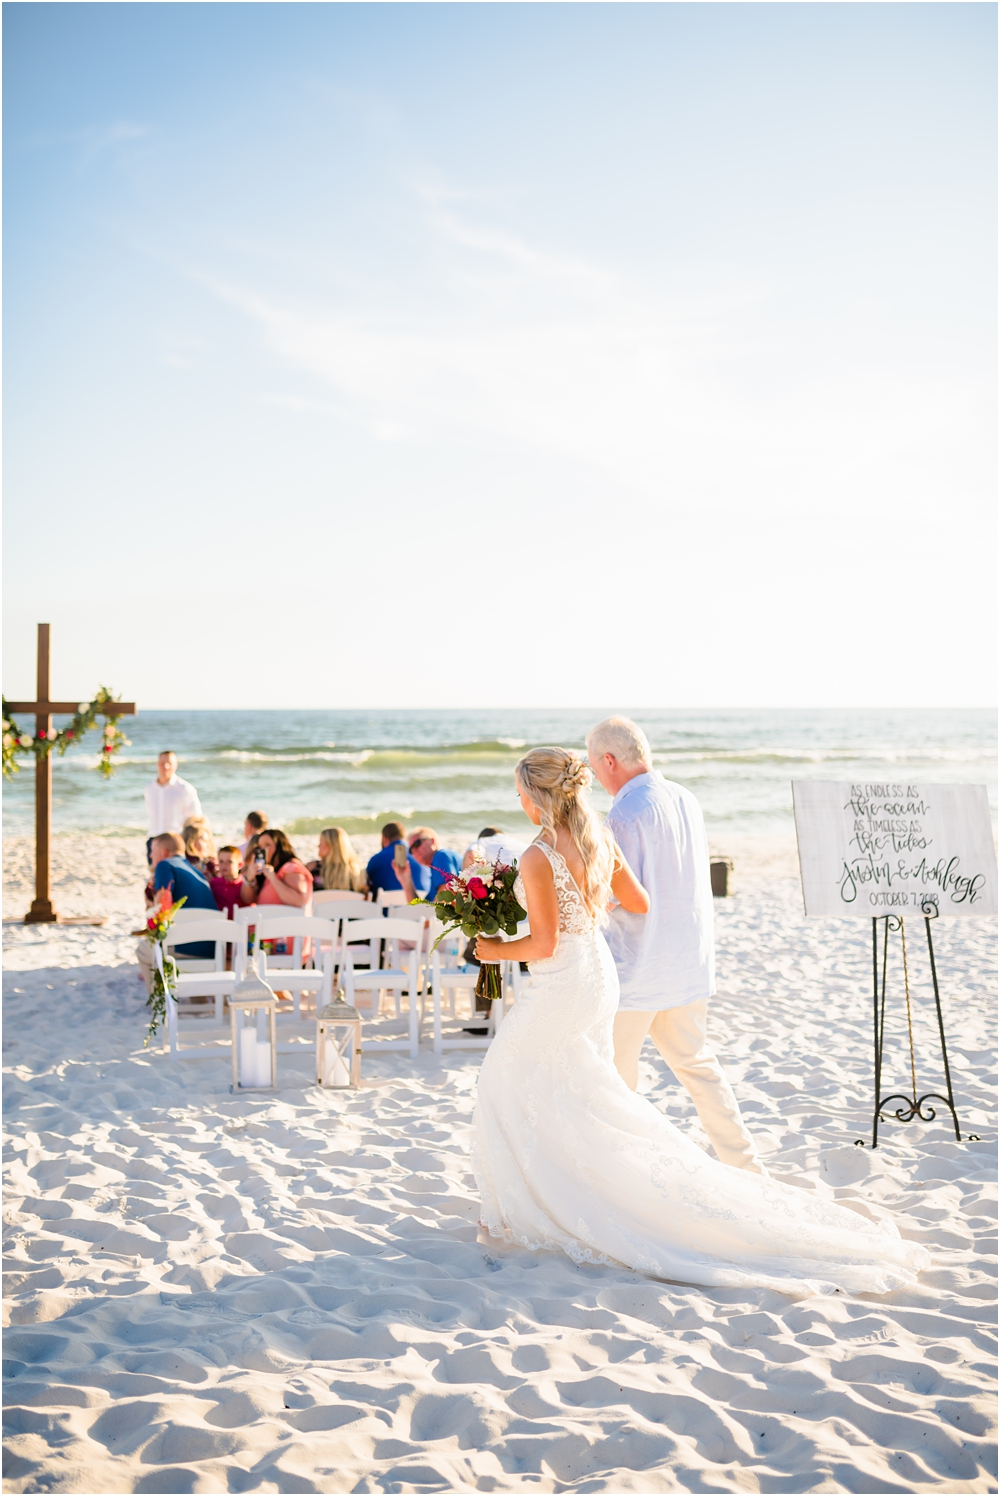 mcglothlin-wedding-kiersten-stevenson-photography-30a-panama-city-beach-dothan-tallahassee-(79-of-145).jpg